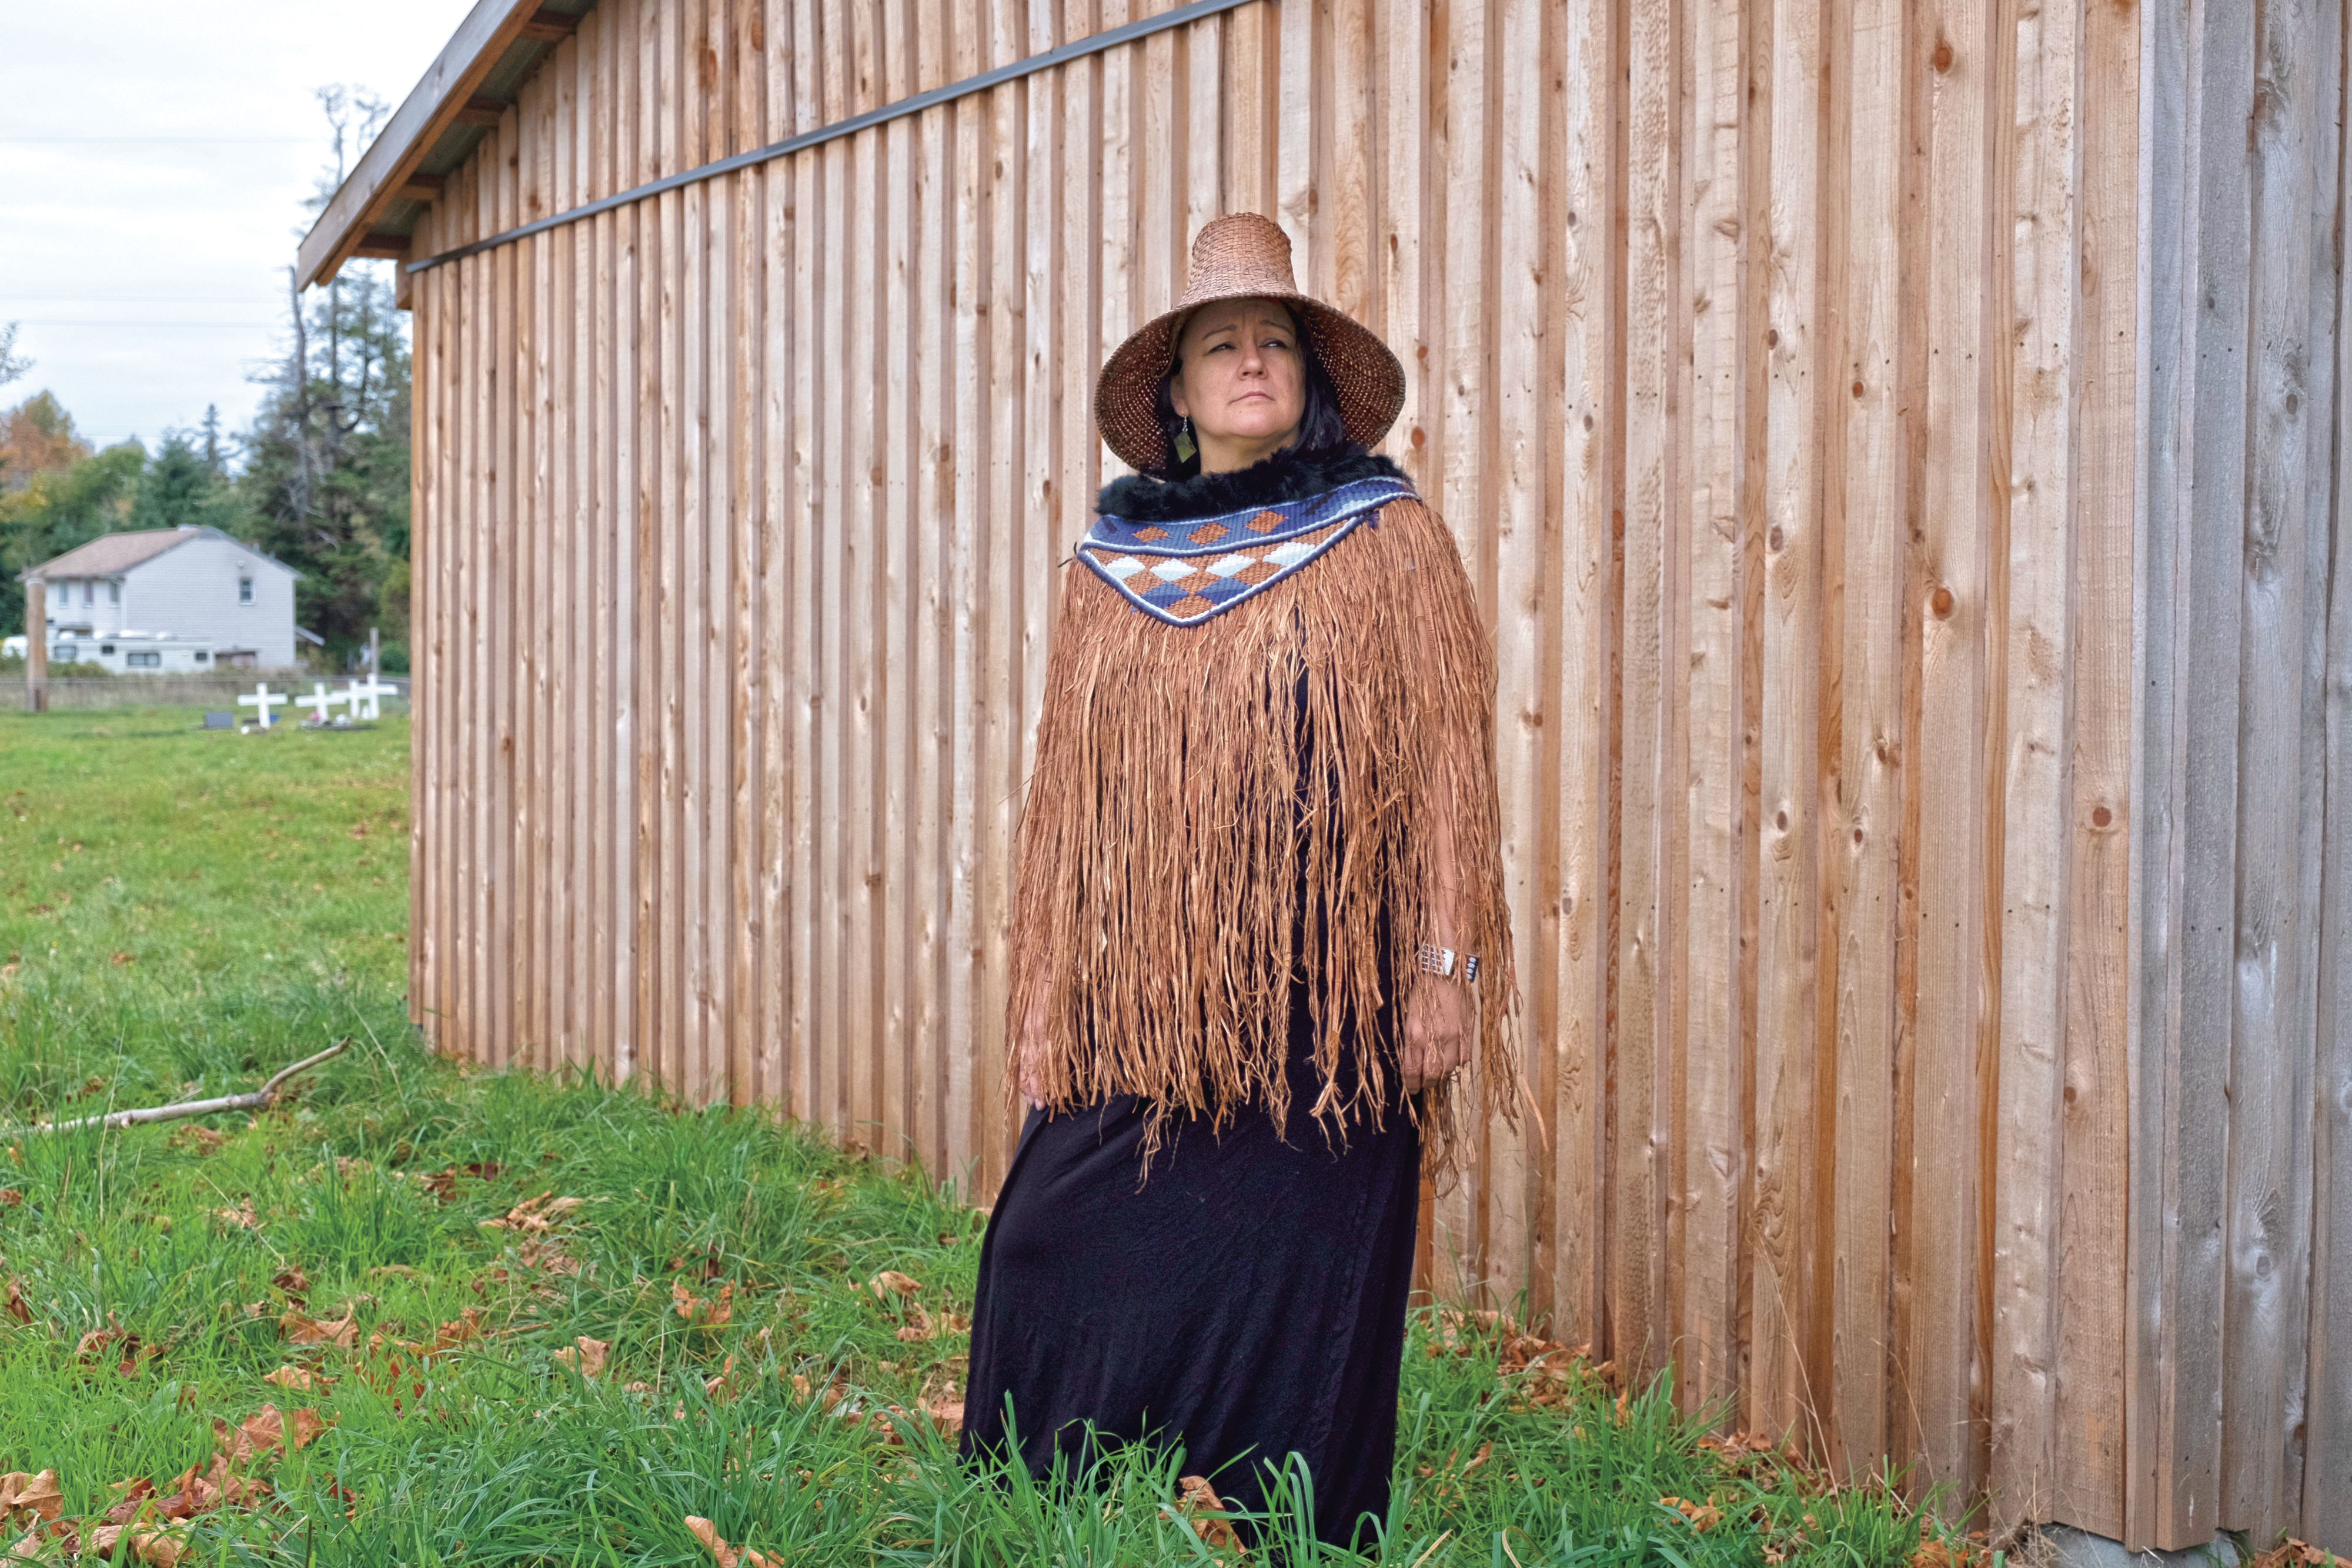 Hegus (Chief) Nicole Rempel of the K'omoks First Nation stands in front of the mortuary house at the K'omoks cemetery. (Photograph by Jen Osborne)